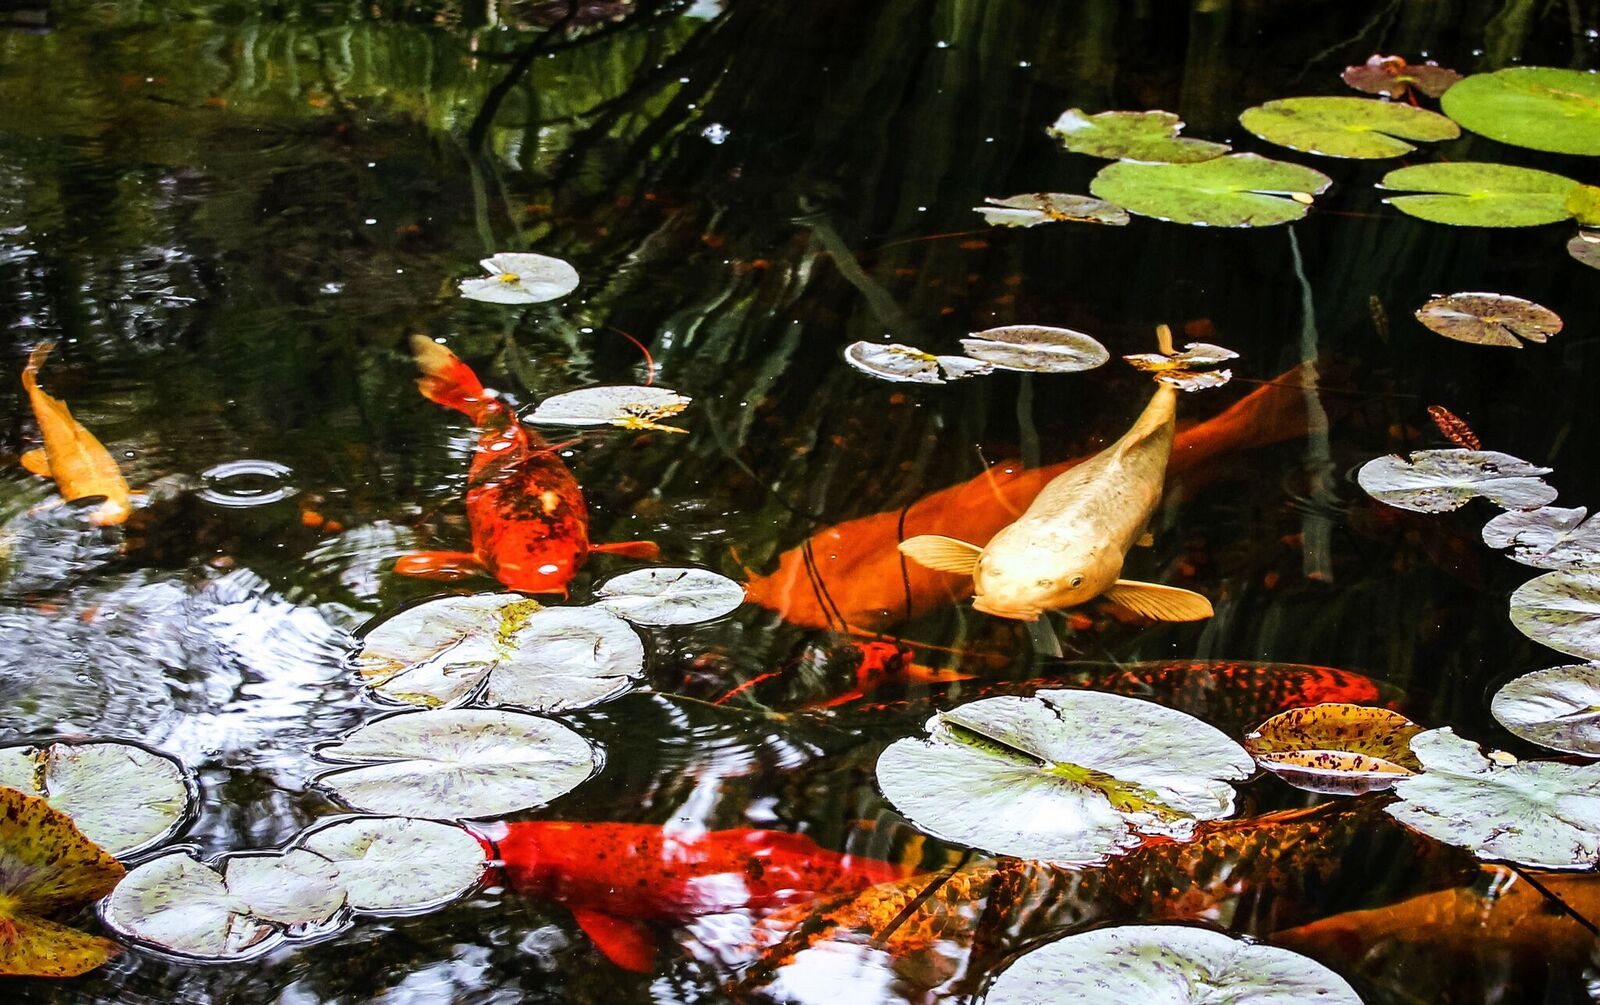 Pond and fish care archives aquareale pond blog for Koi pond fish